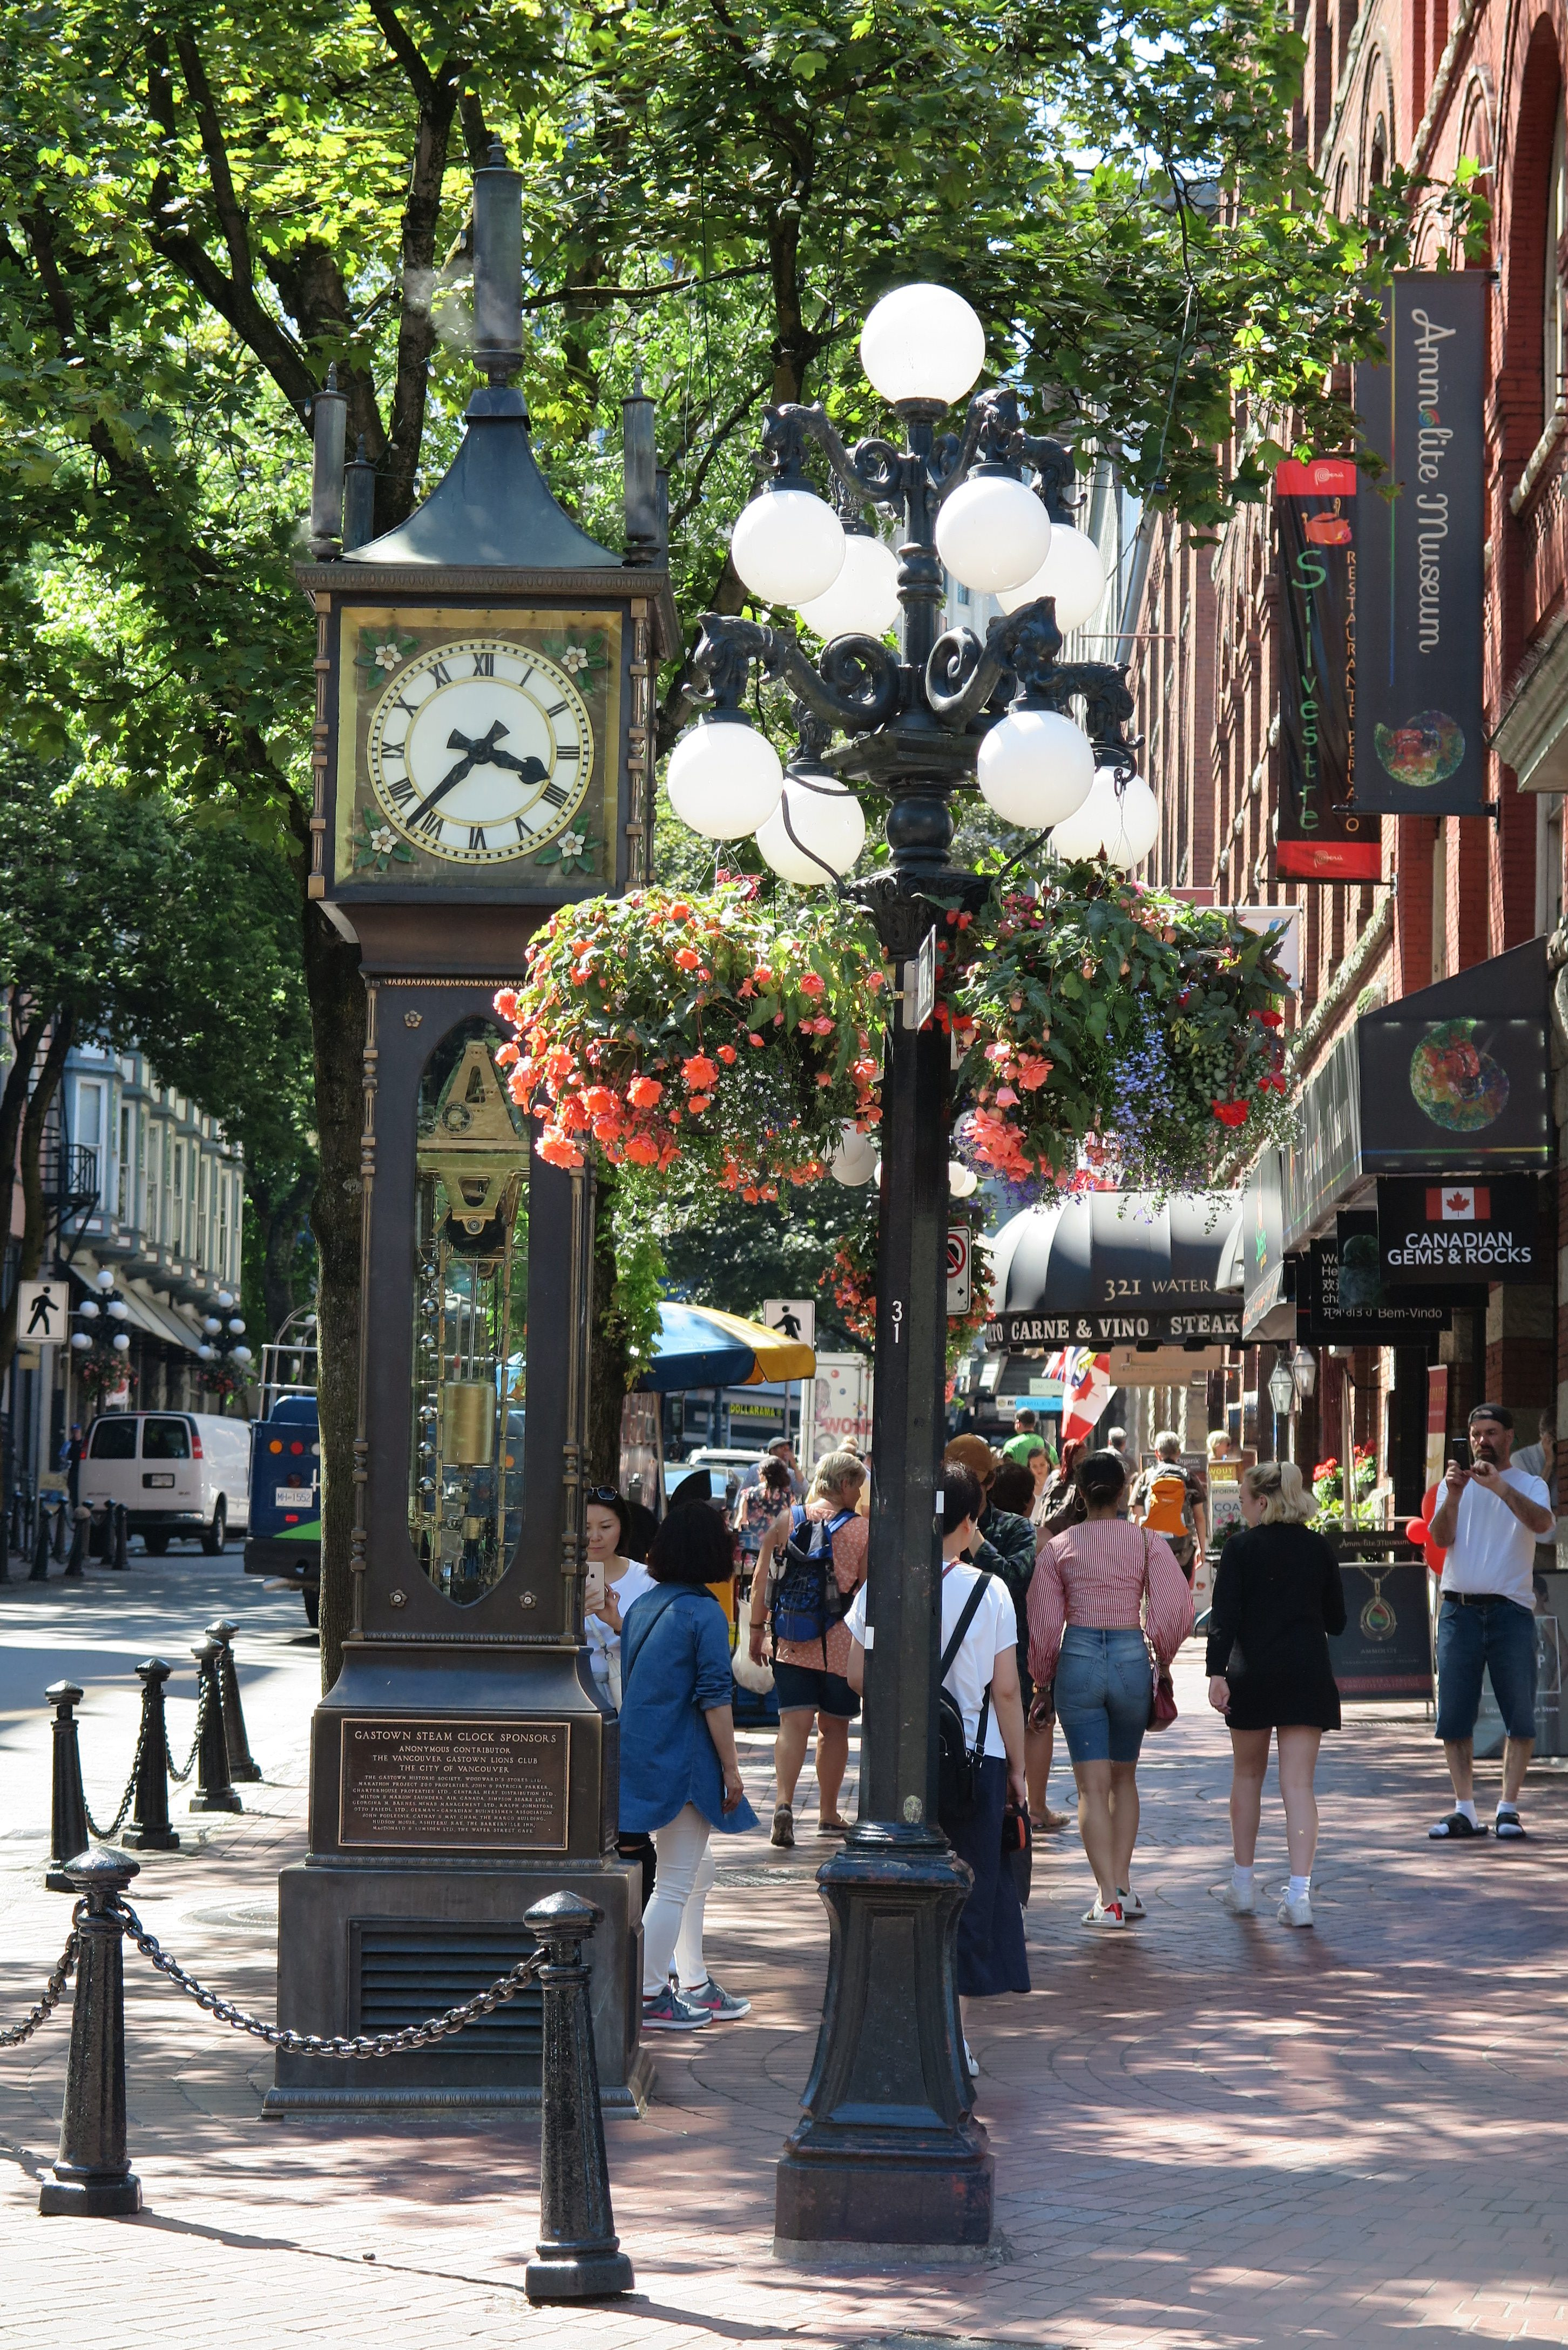 Gastown steaming clock